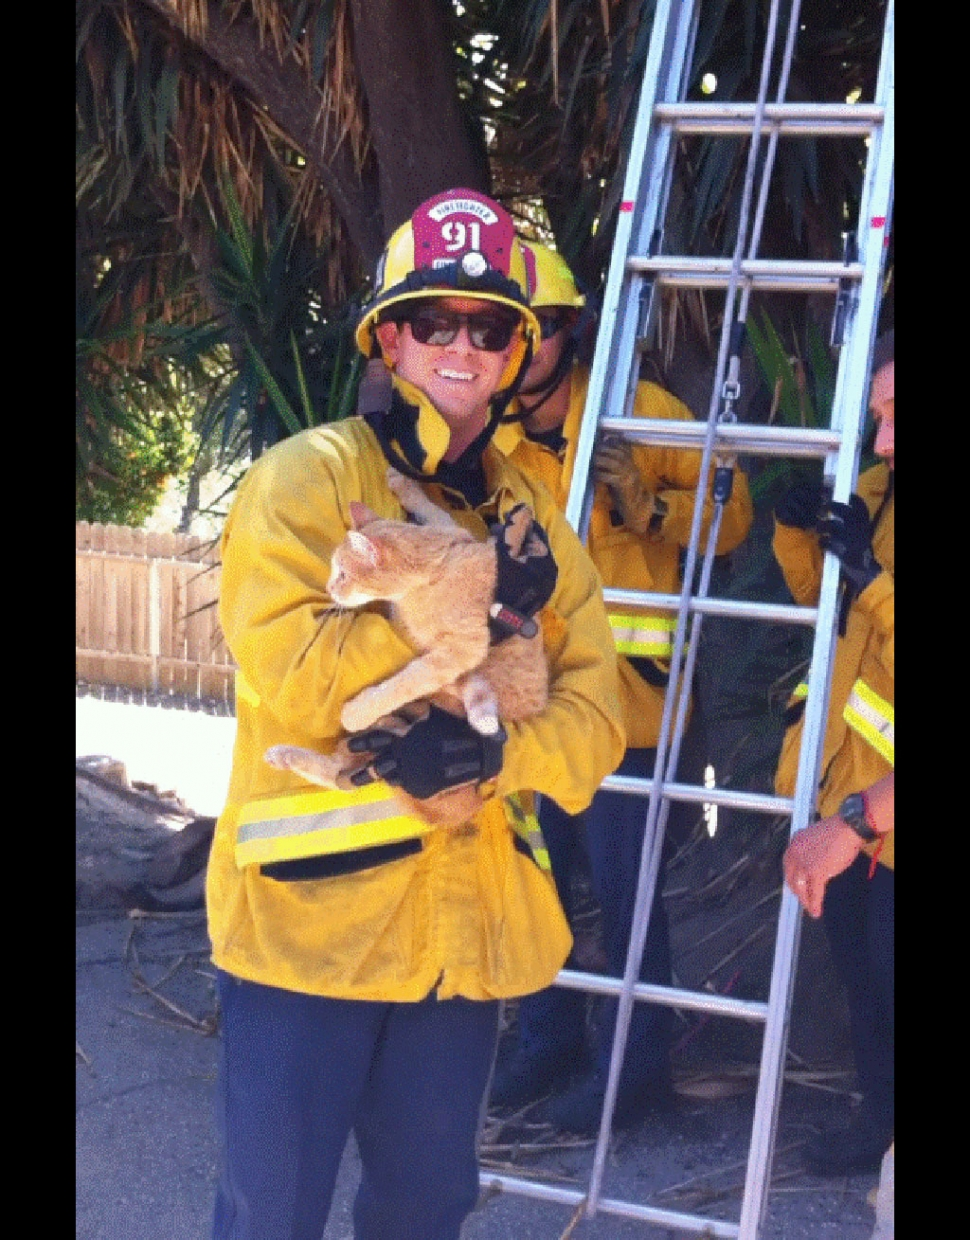 Cat rescued by Fire Department | The Fillmore Gazette